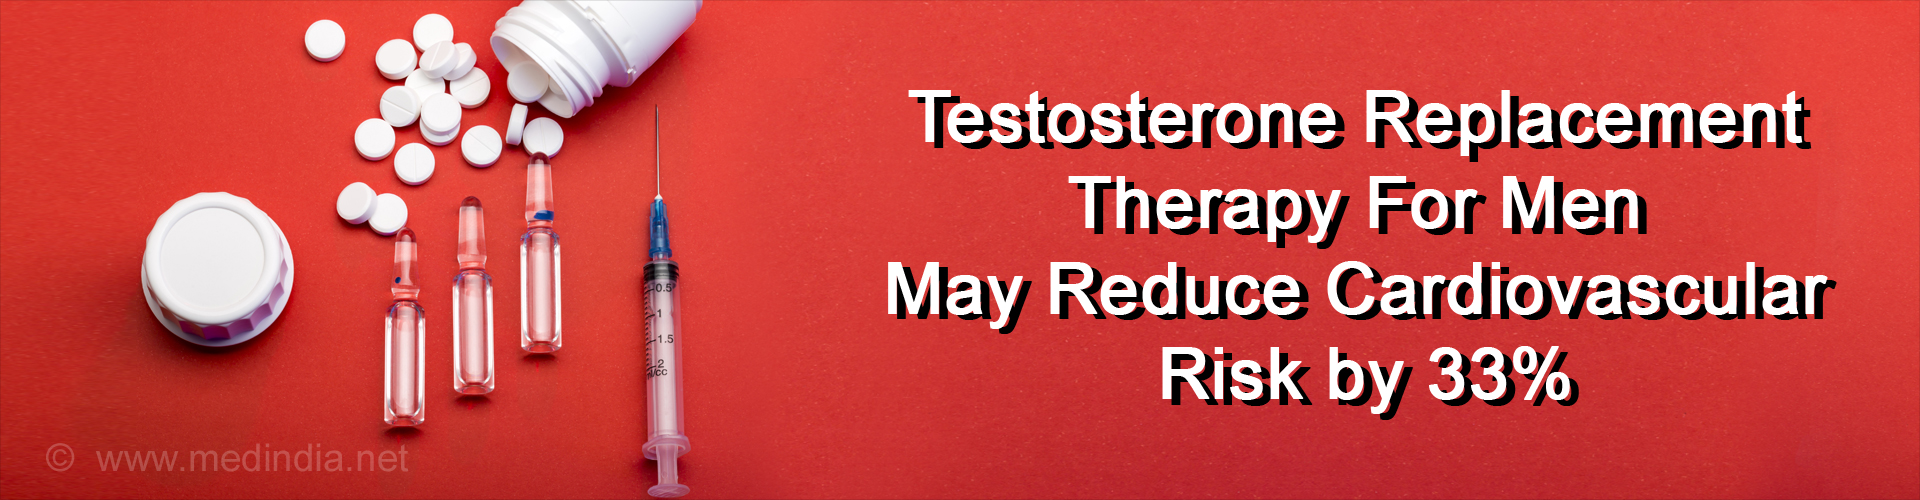 Testosterone Replacement Therapy in Men May Lower Cardiovascular Risk